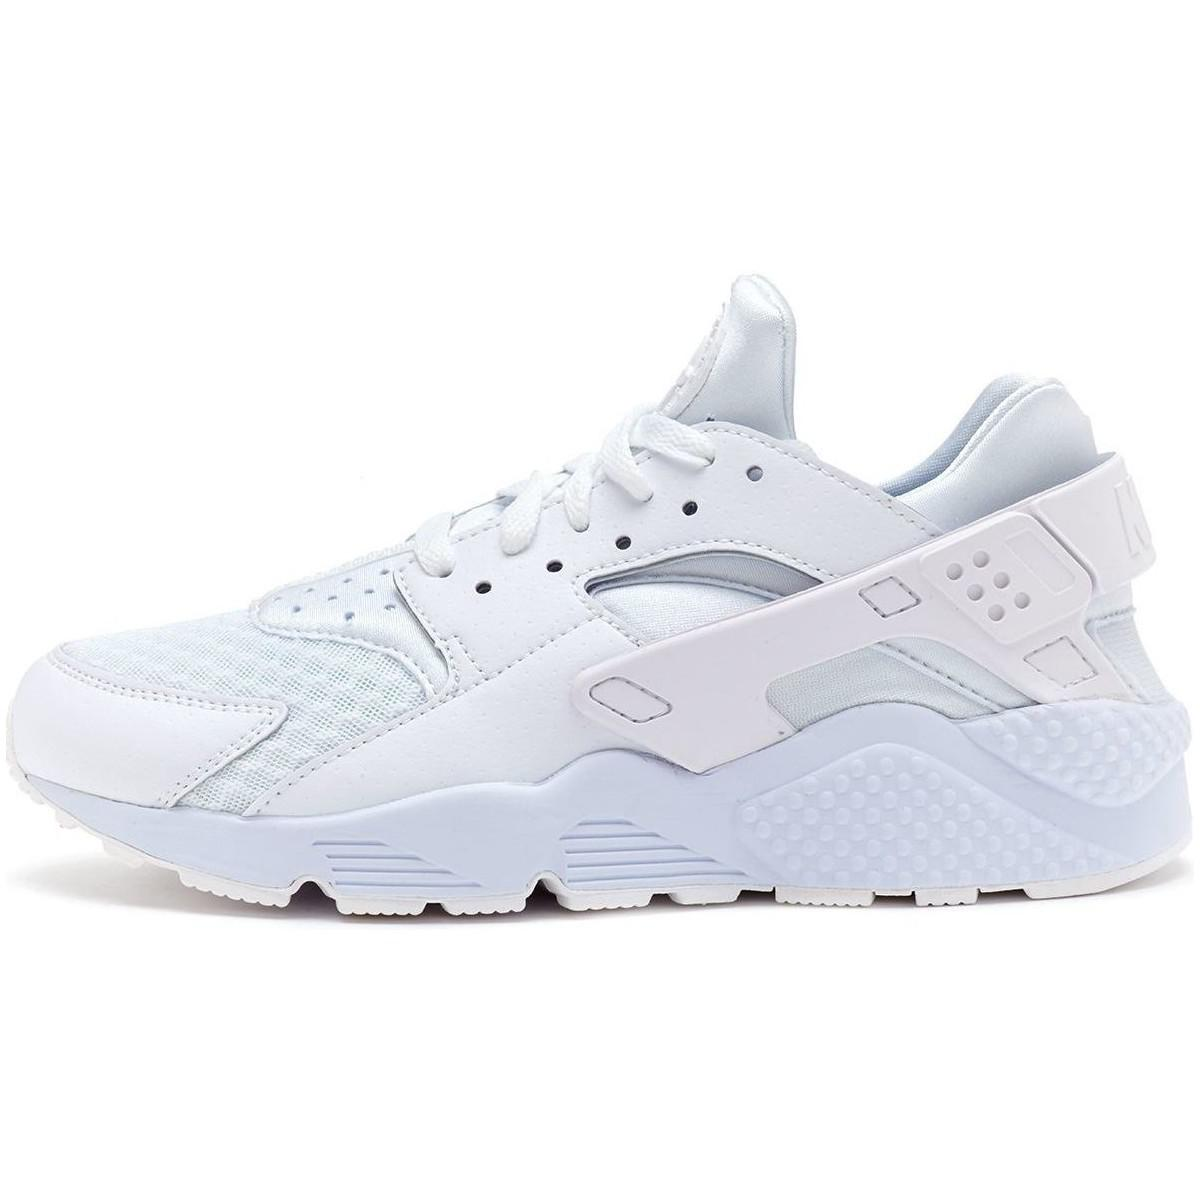 official photos 0a1b3 28137 Nike. Air Huarache Trainers In White Pure Platinum 318429 111 Men s Shoes  ...